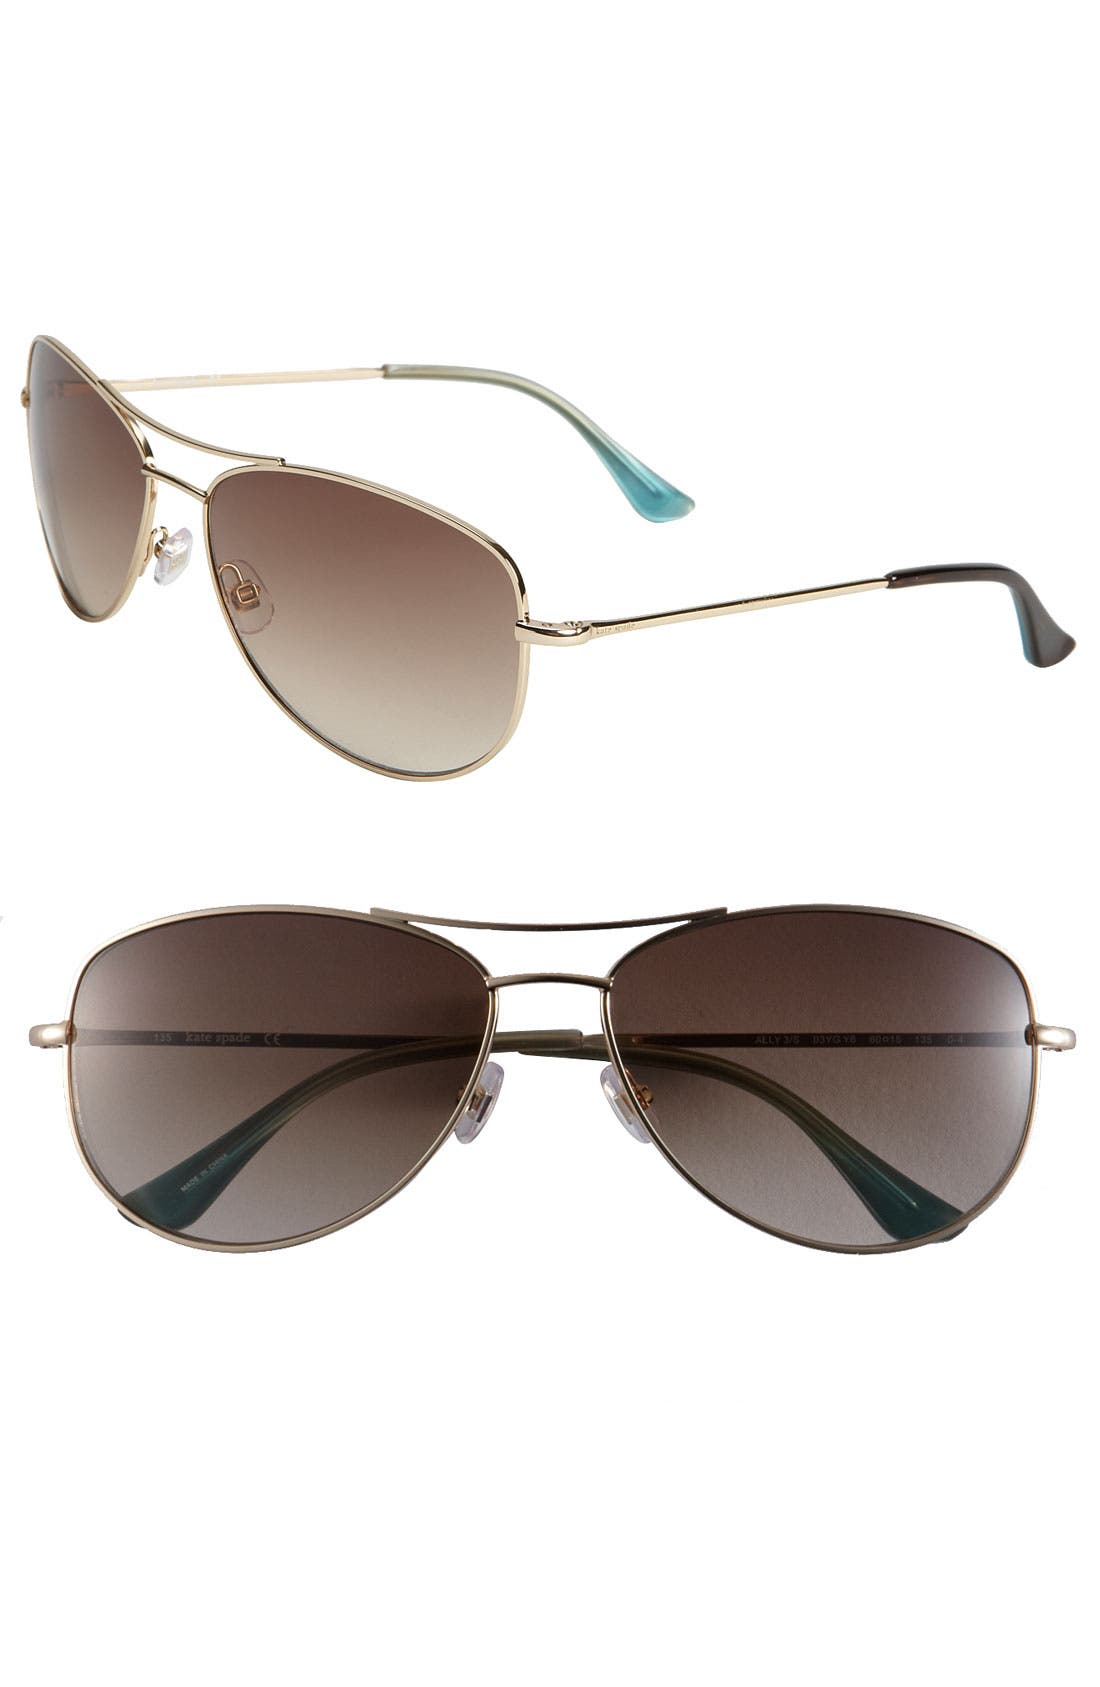 Main Image - kate spade new york 'ally 3' 60mm aviator sunglasses